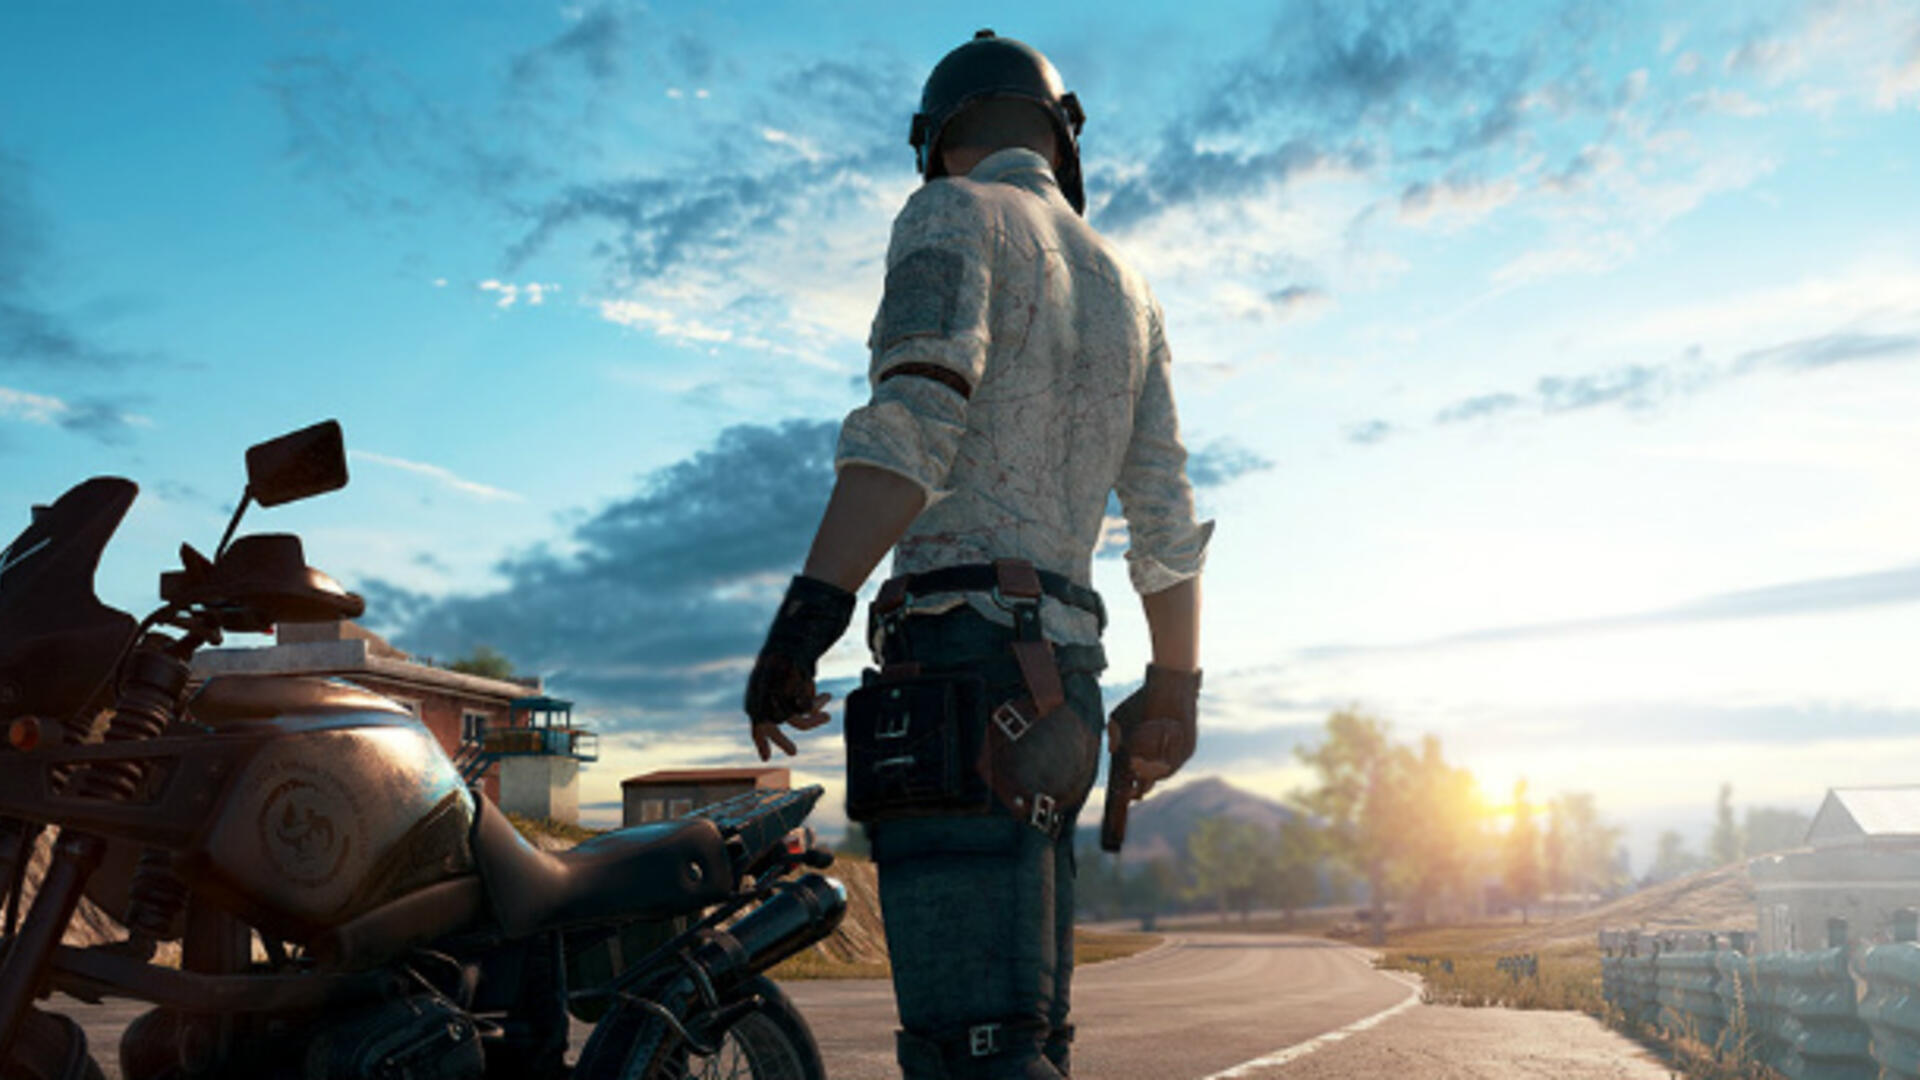 PUBG Xbox Roadmap Makes Optimizing Performance a High Priority